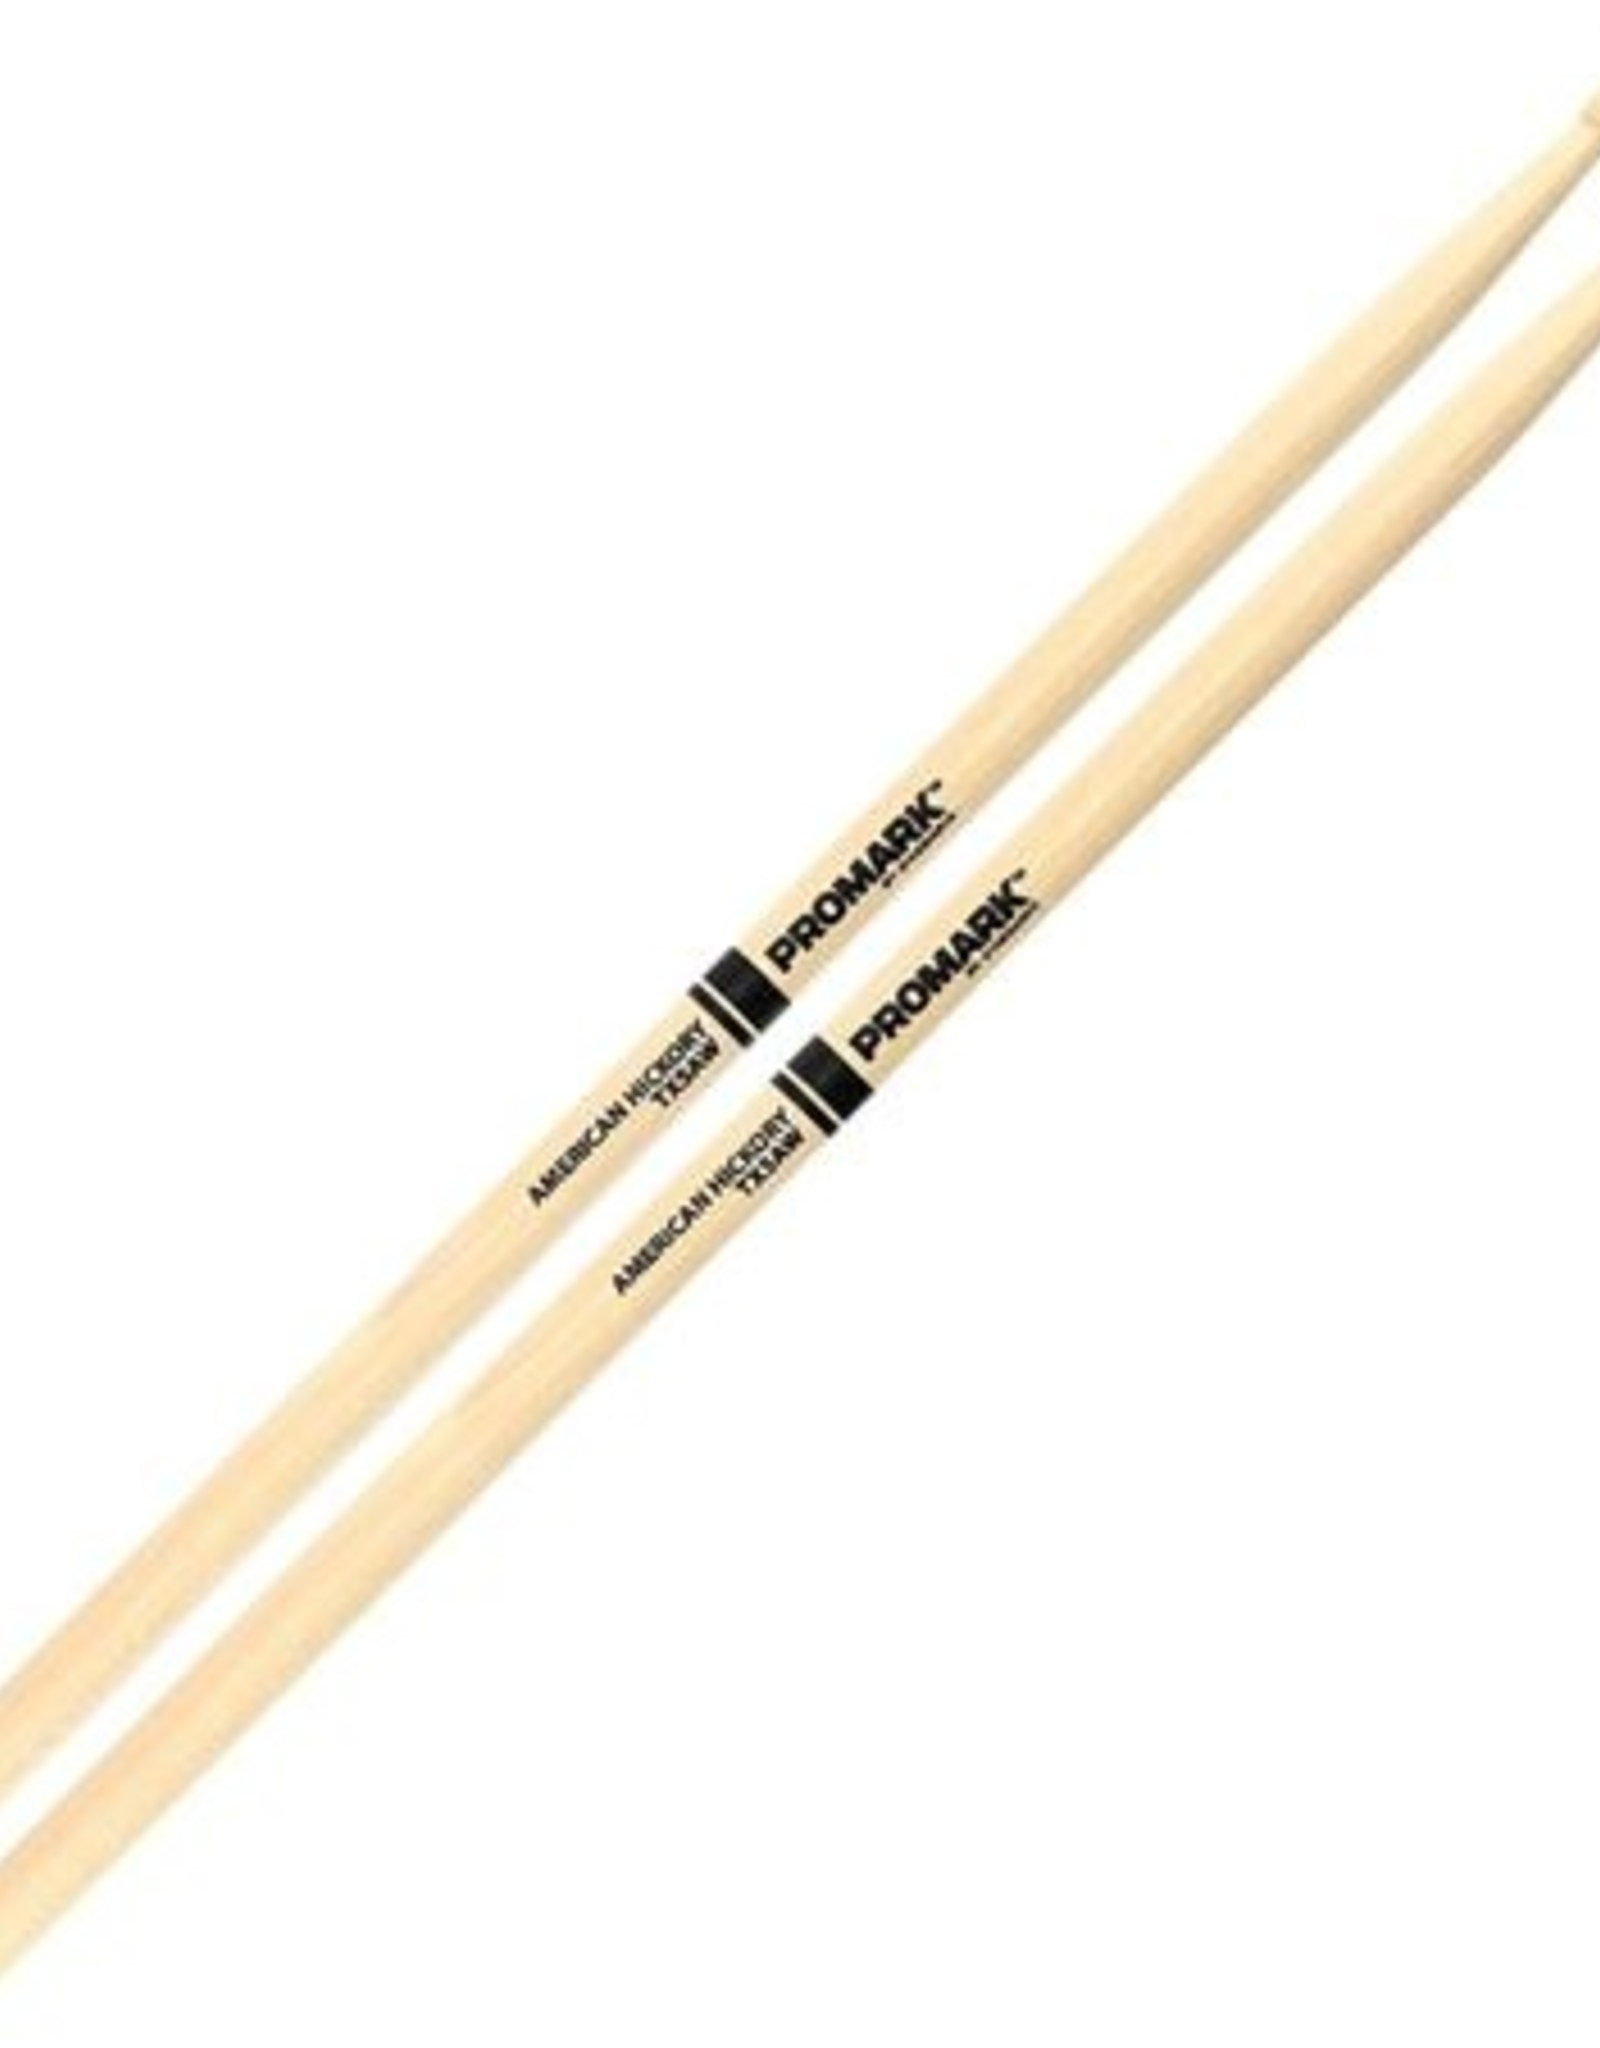 Promark Promark 5A American Hickory Wood Tip Drumsticks